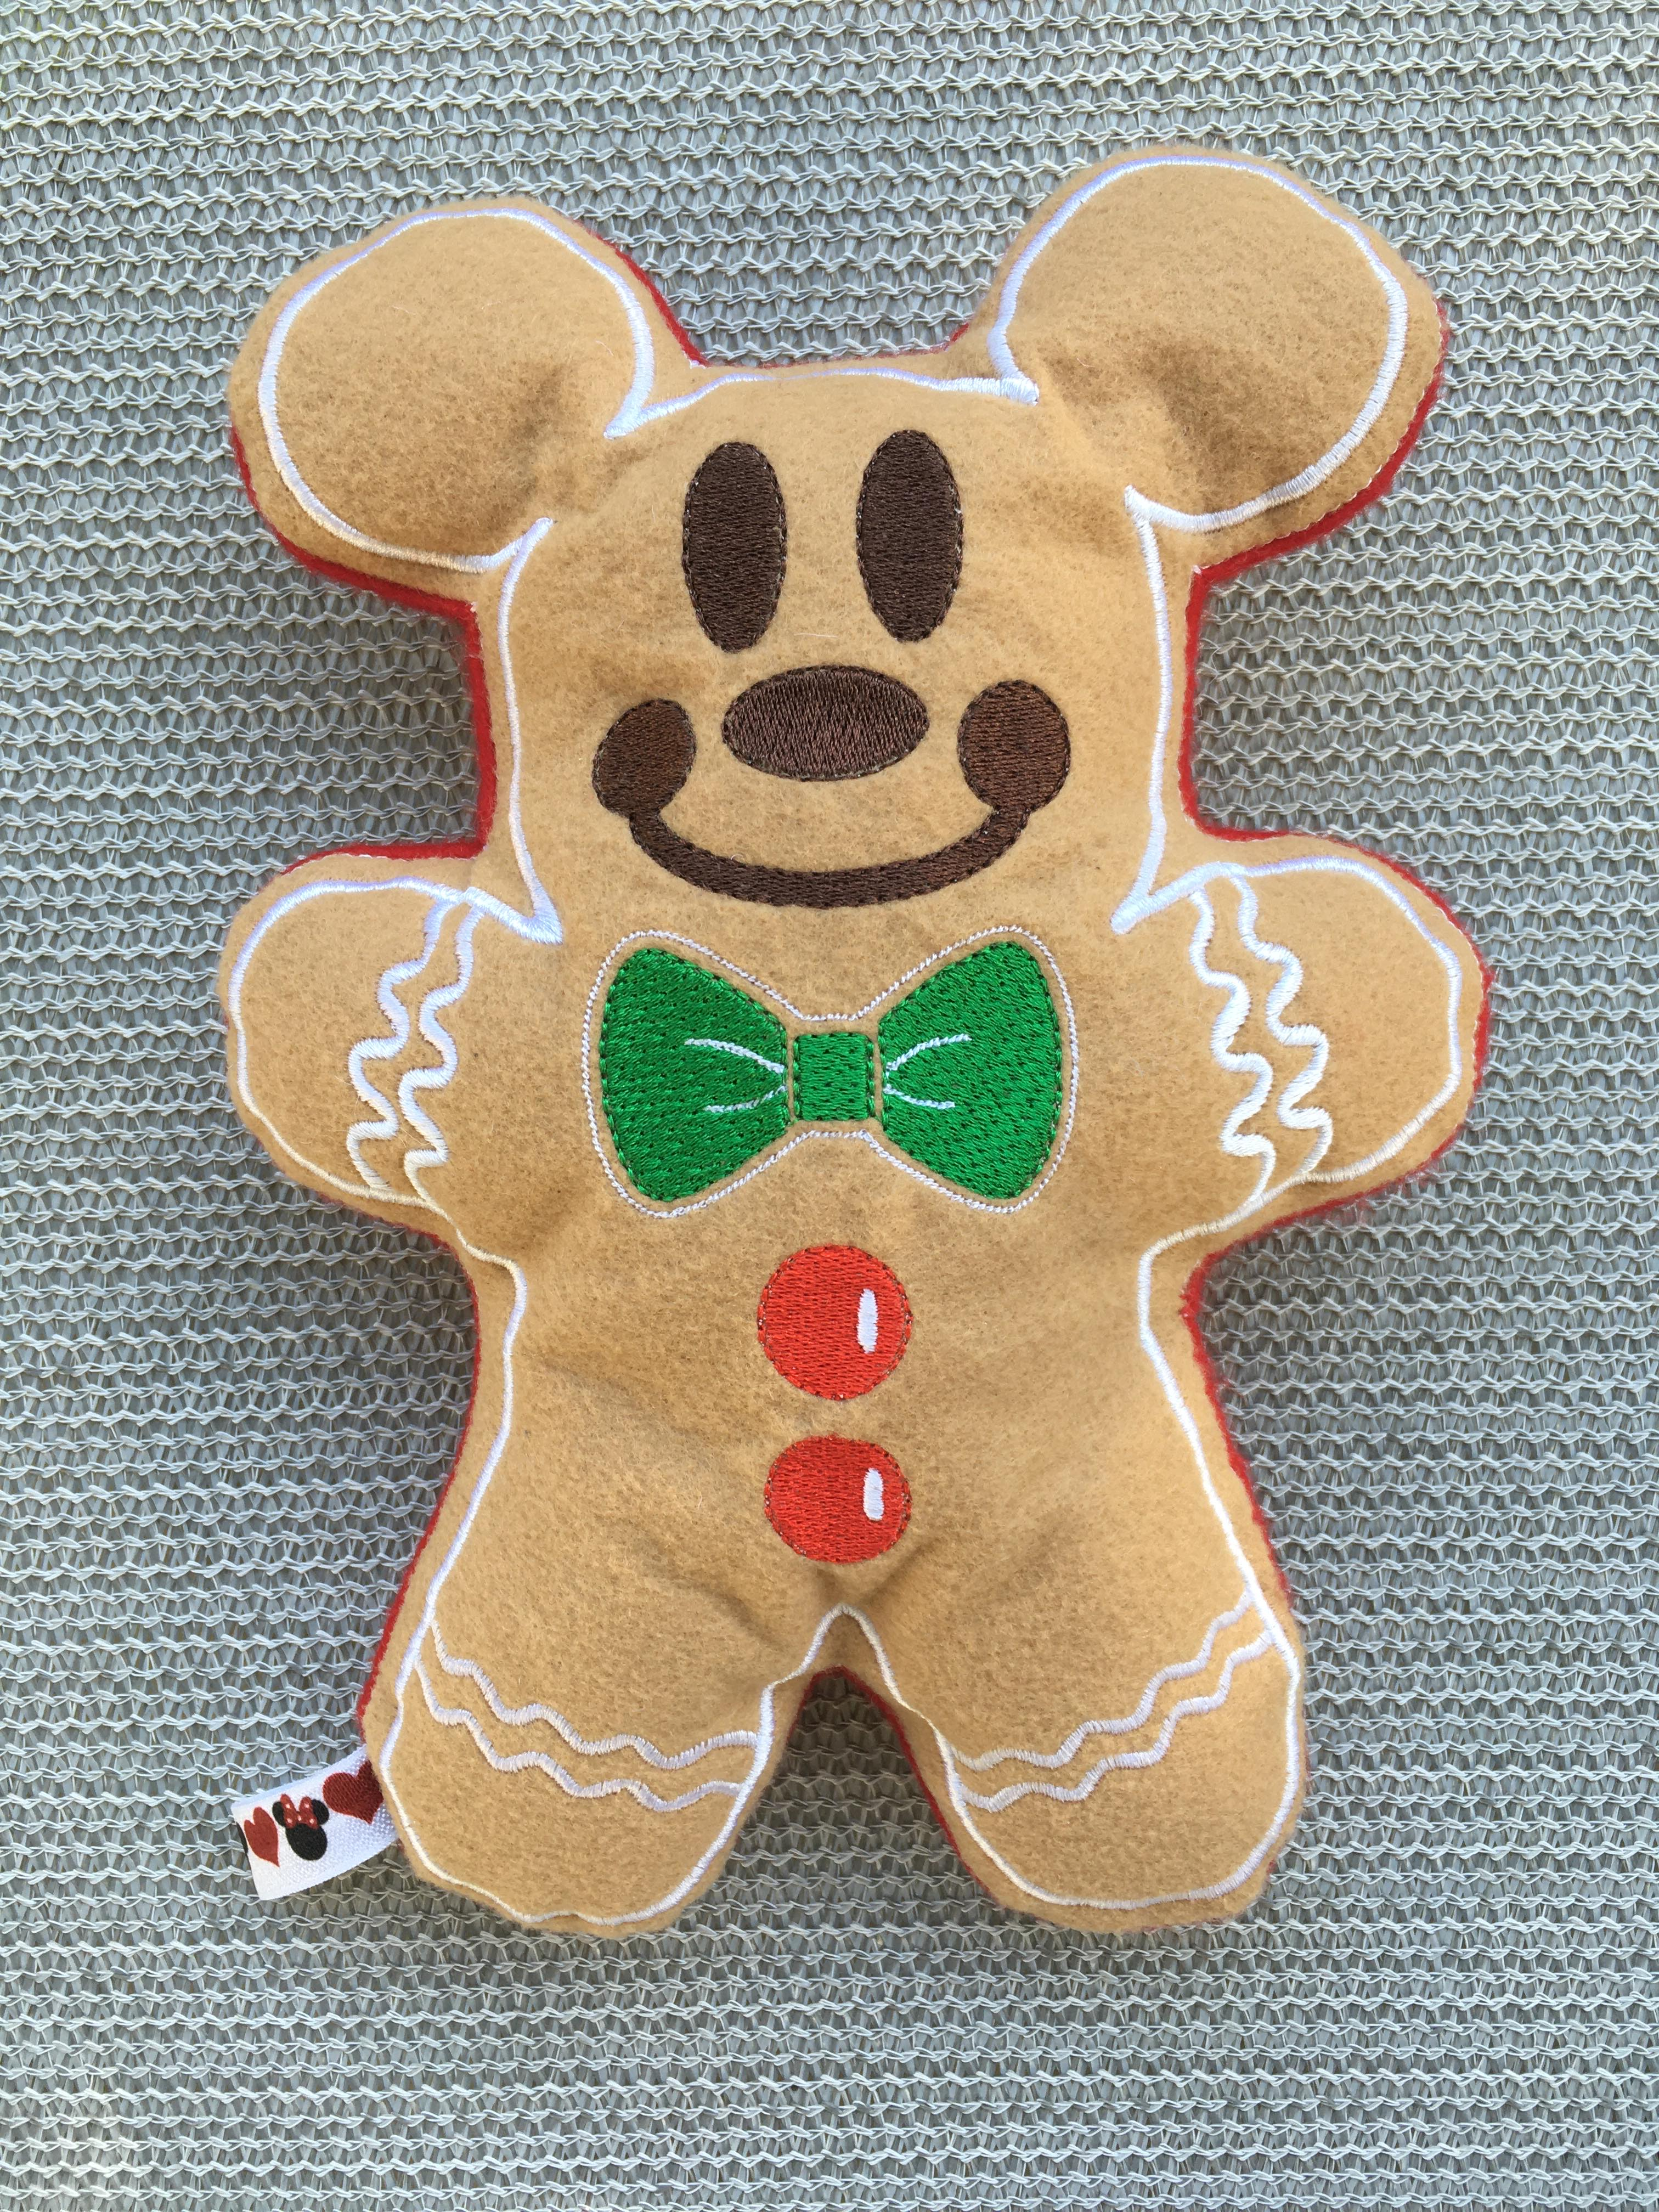 Mr Mouse Gingerbread Stuffie Embroidery Design 5x7